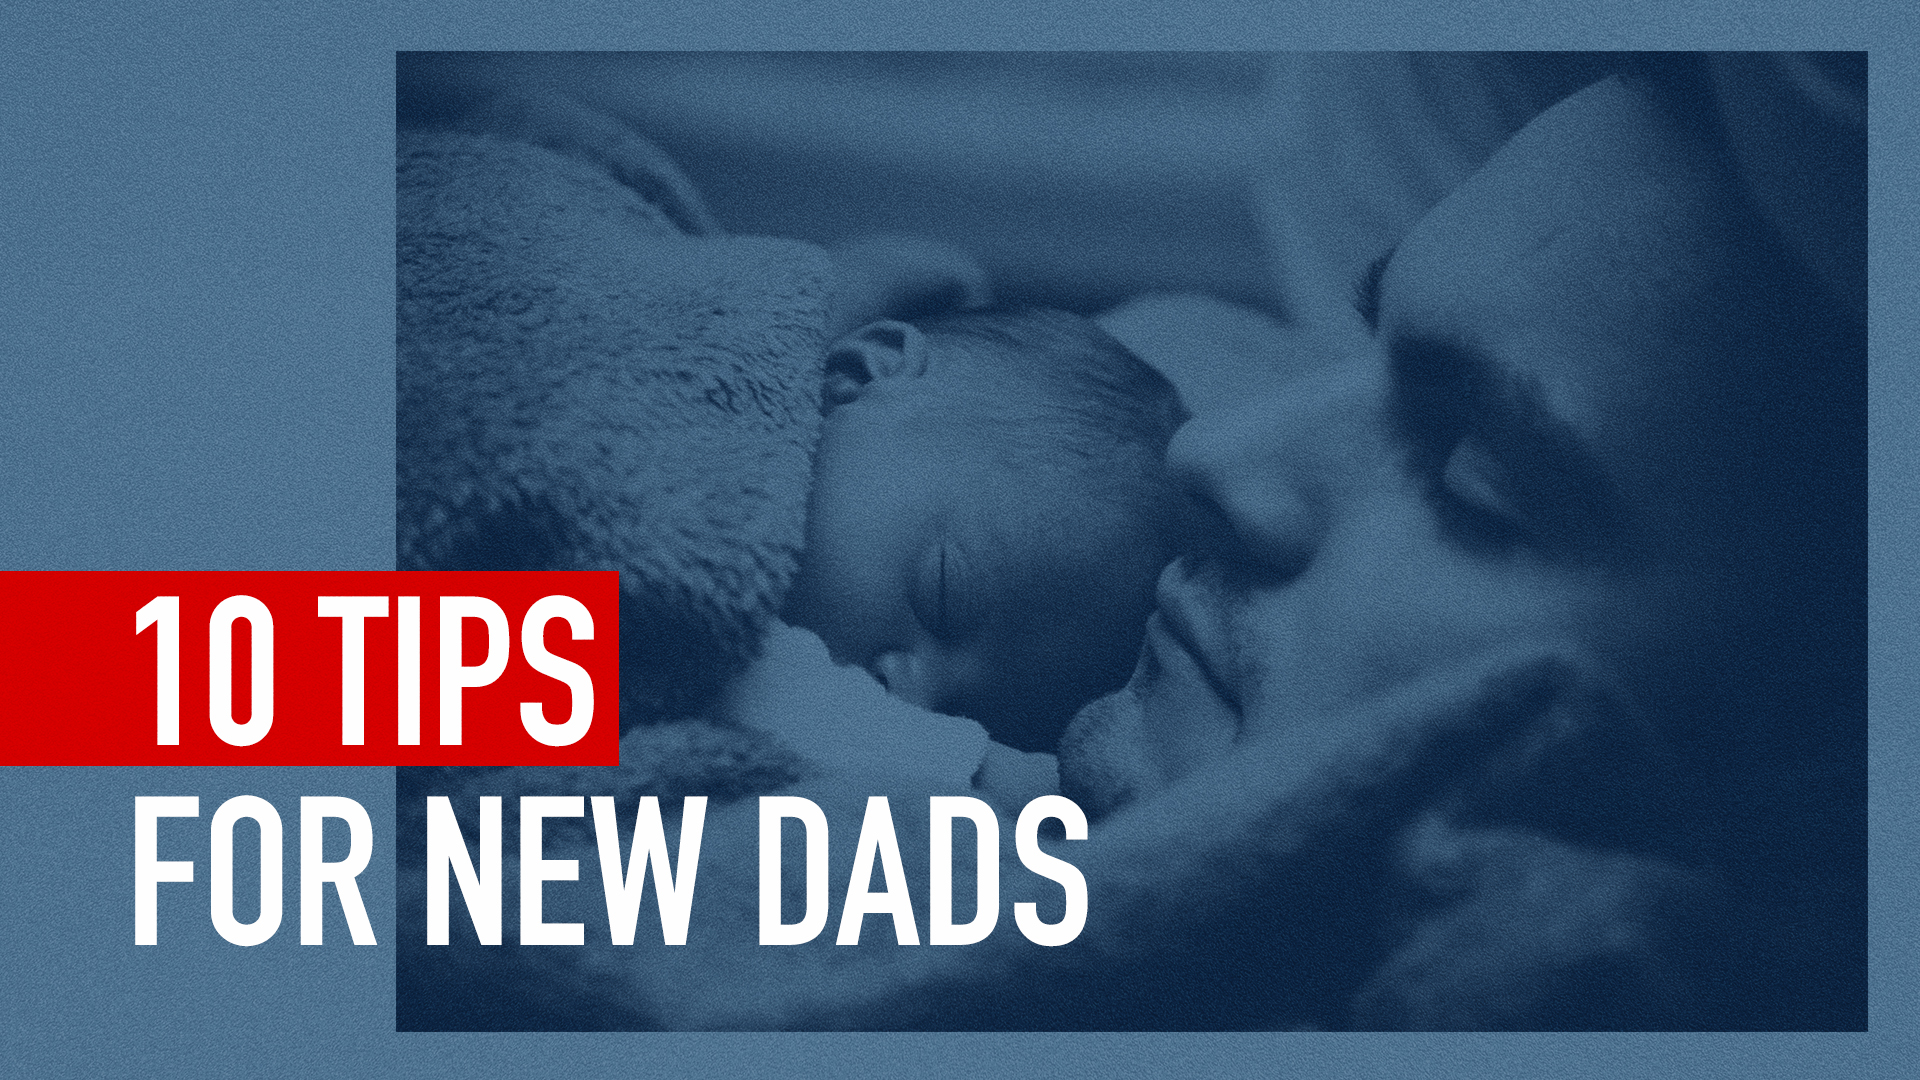 10 TIPS FOR NEW DADS